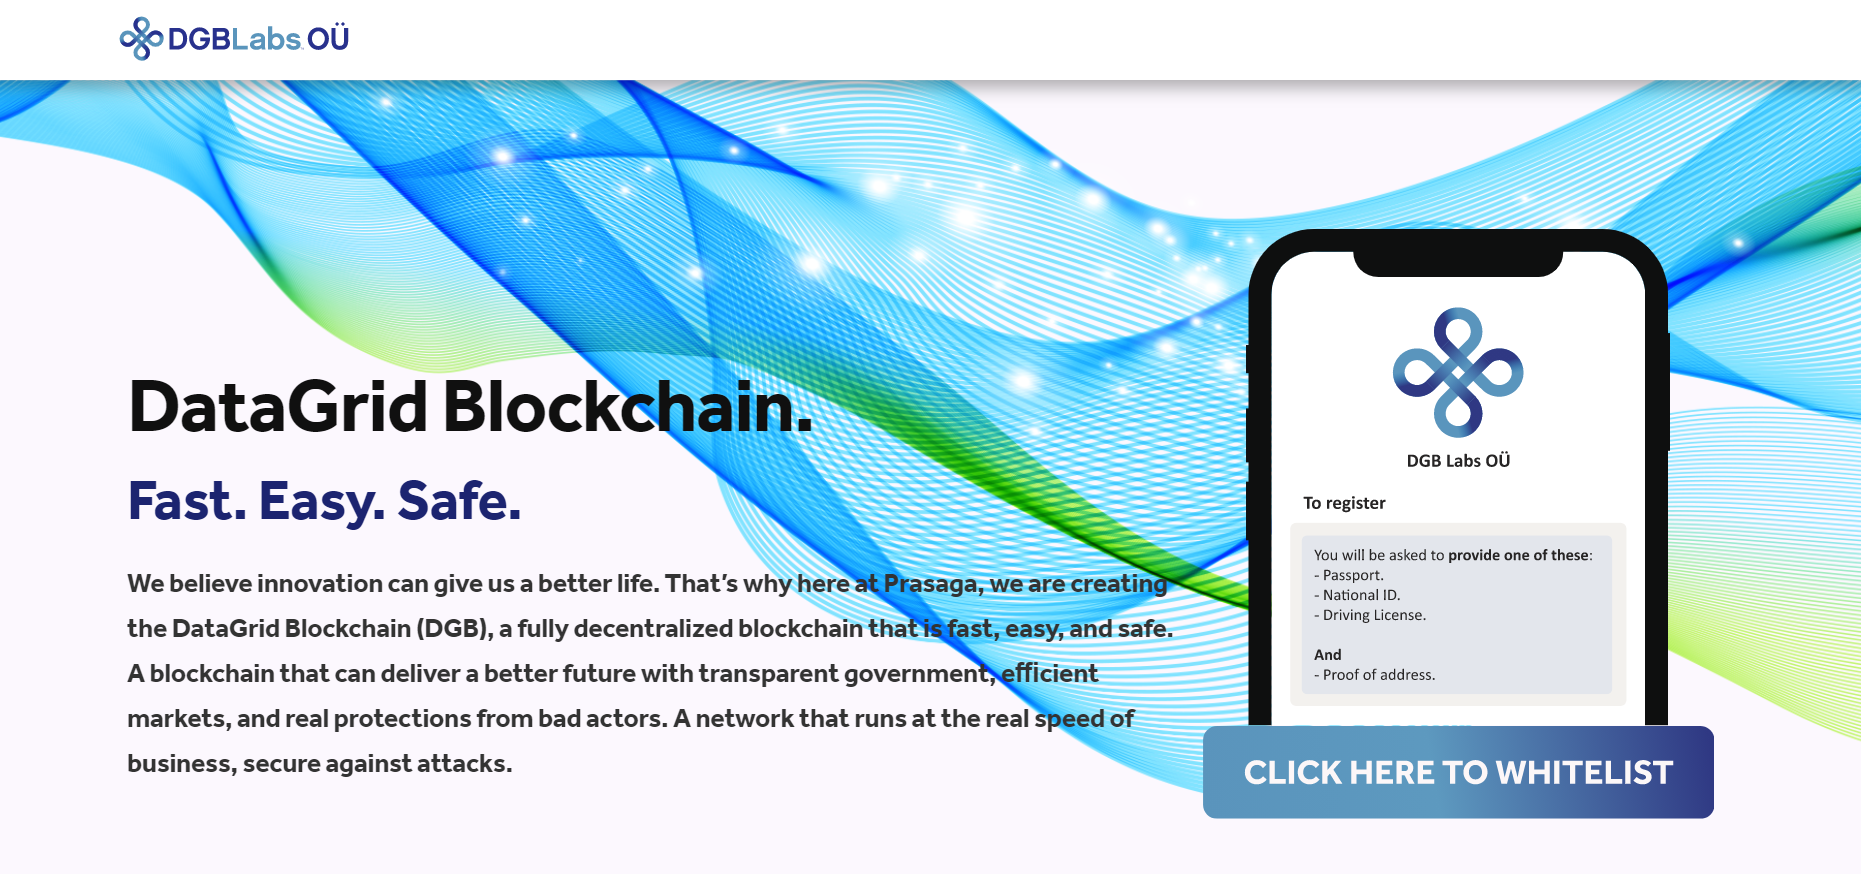 Whitelist in the DataGrid Token Sales Today and Become a Part of the Global Frictionless Digital Asset Ecosystem